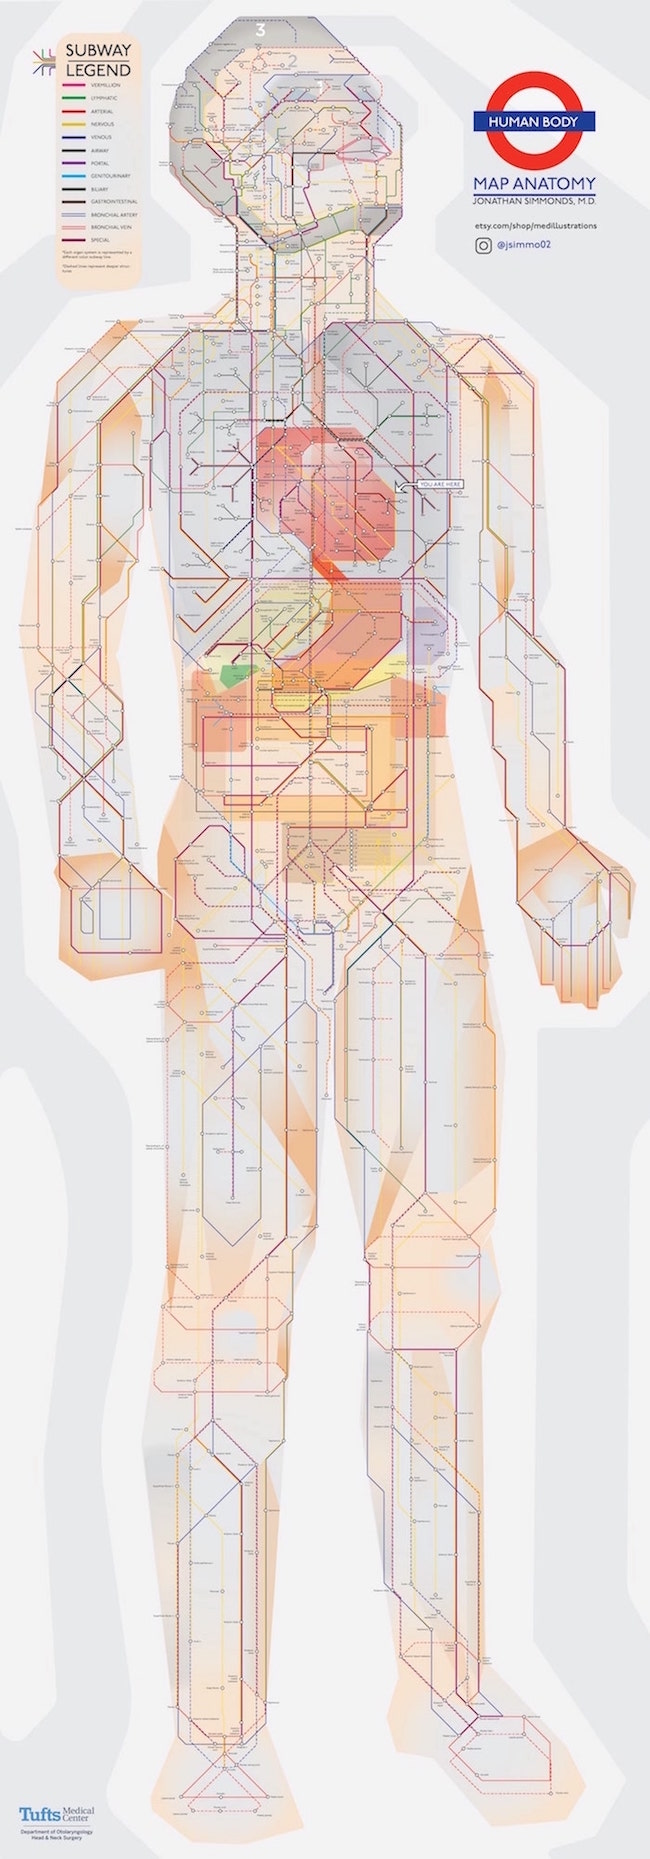 A Doctor Created A Human Anatomy Diagram In The Style Of A Subway